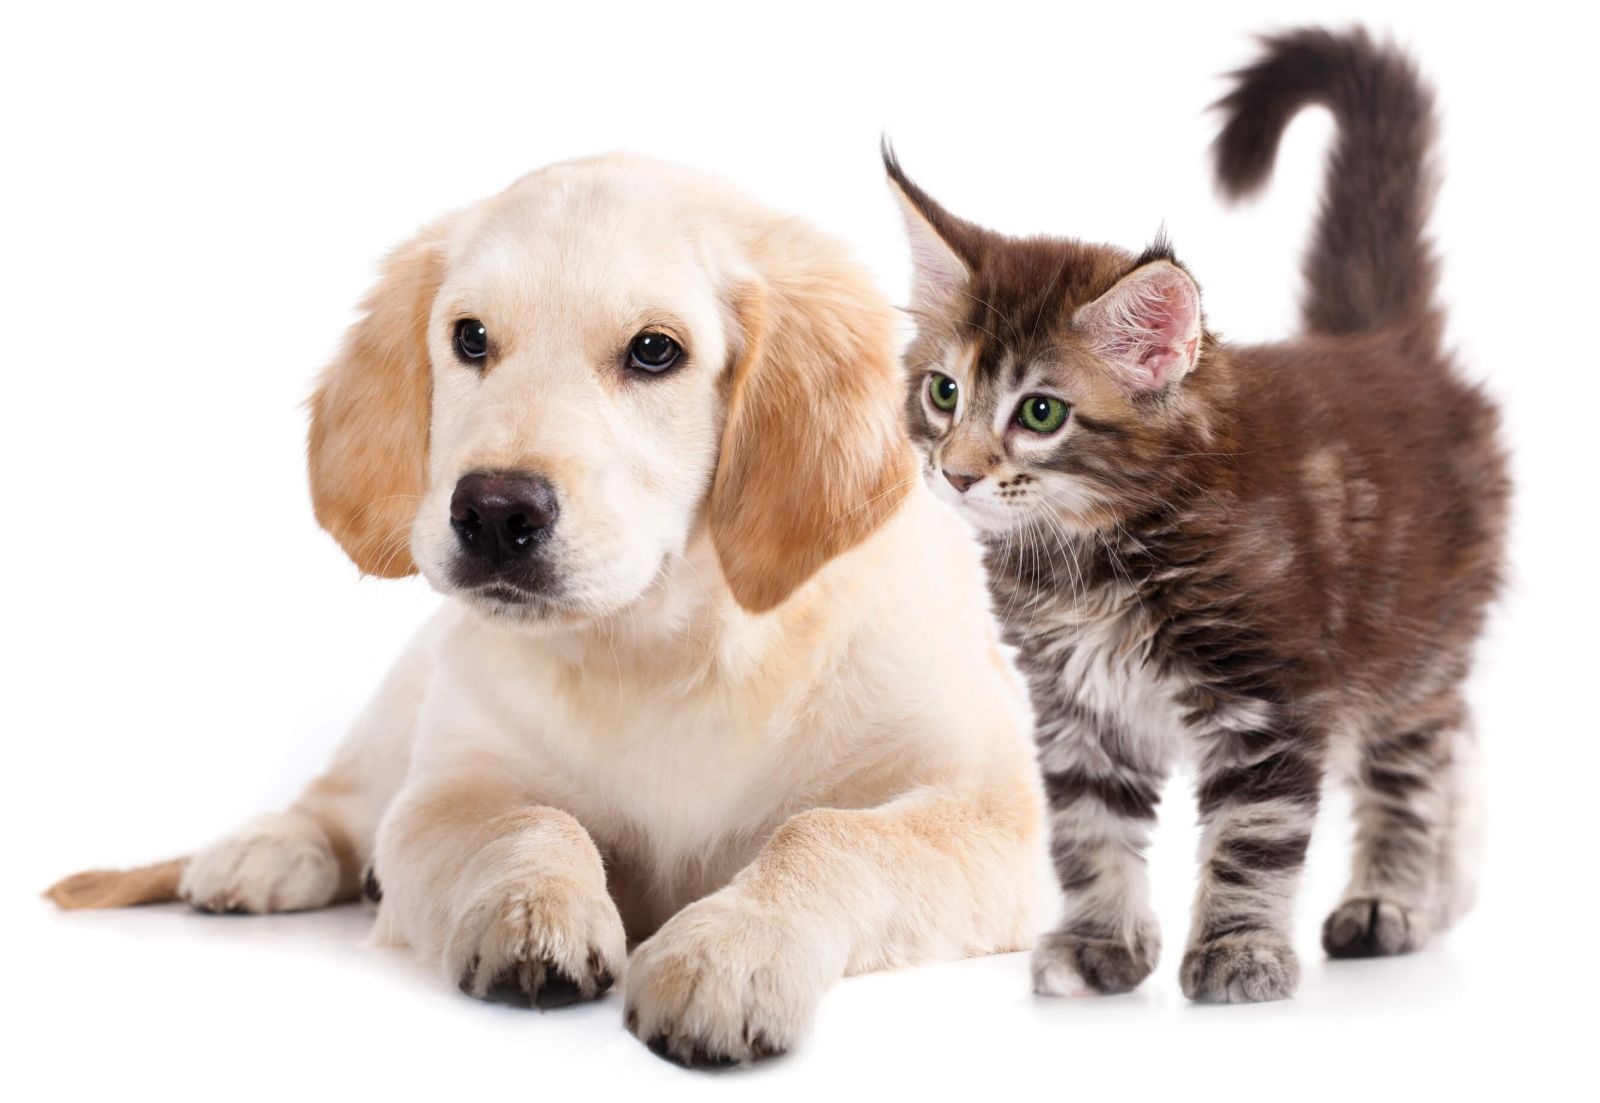 Image of cat and dog